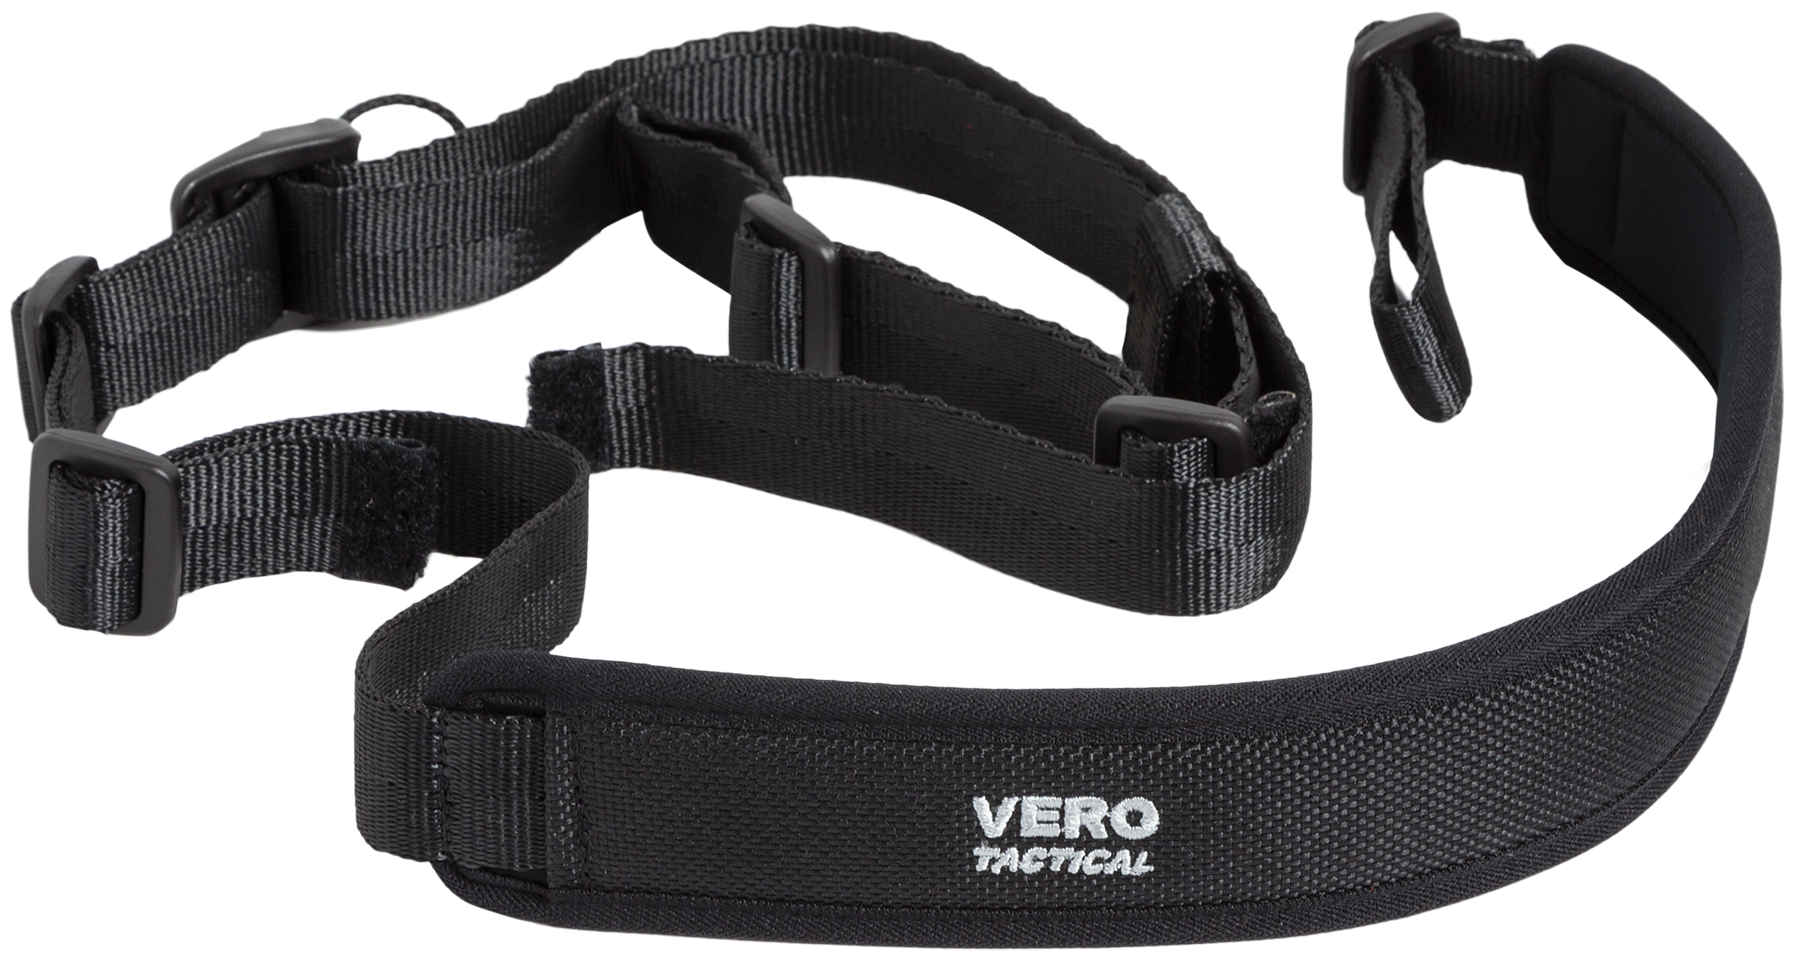 Vero V18030 Tactical Rifle Two Point Sling 1